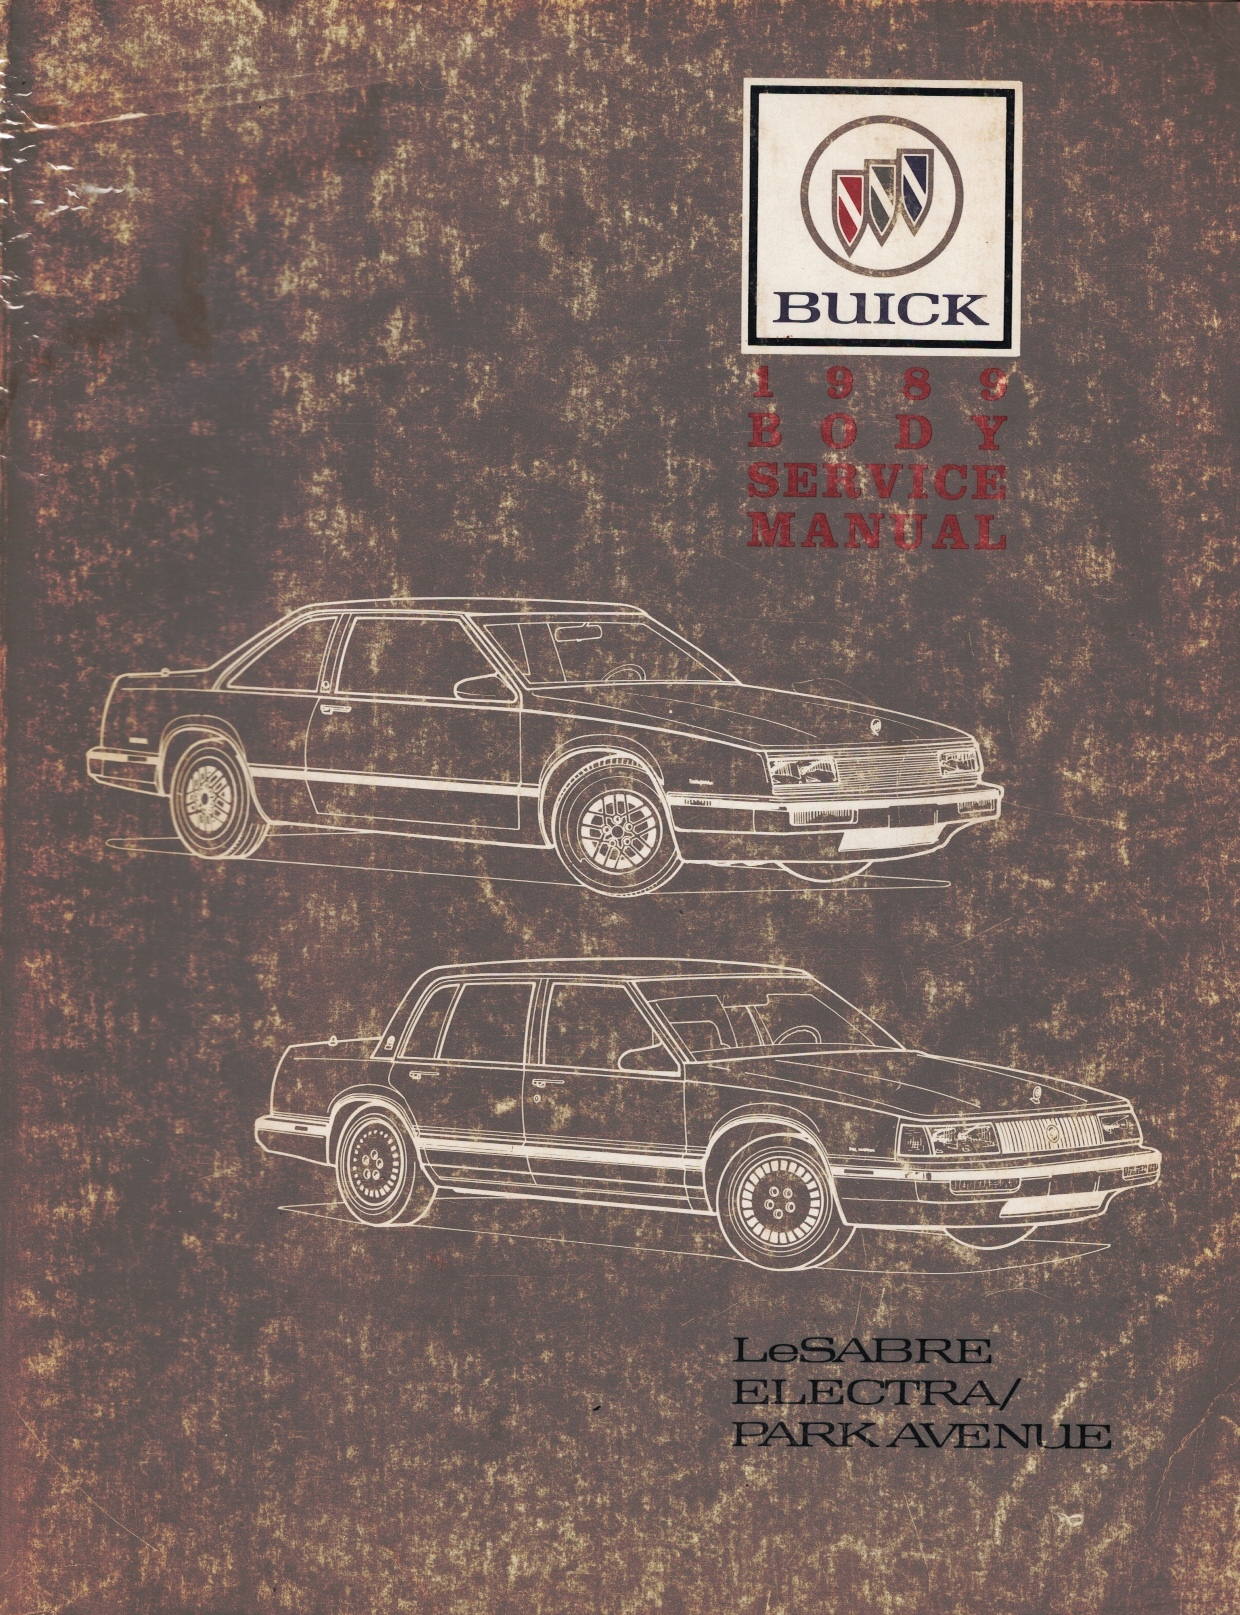 """Image for 1989 Buick LeSabre, Electra / Park Avenue Service Manual - 2 Volume Set; includes the """"Service Manual"""", the """"Body Service Manual"""""""